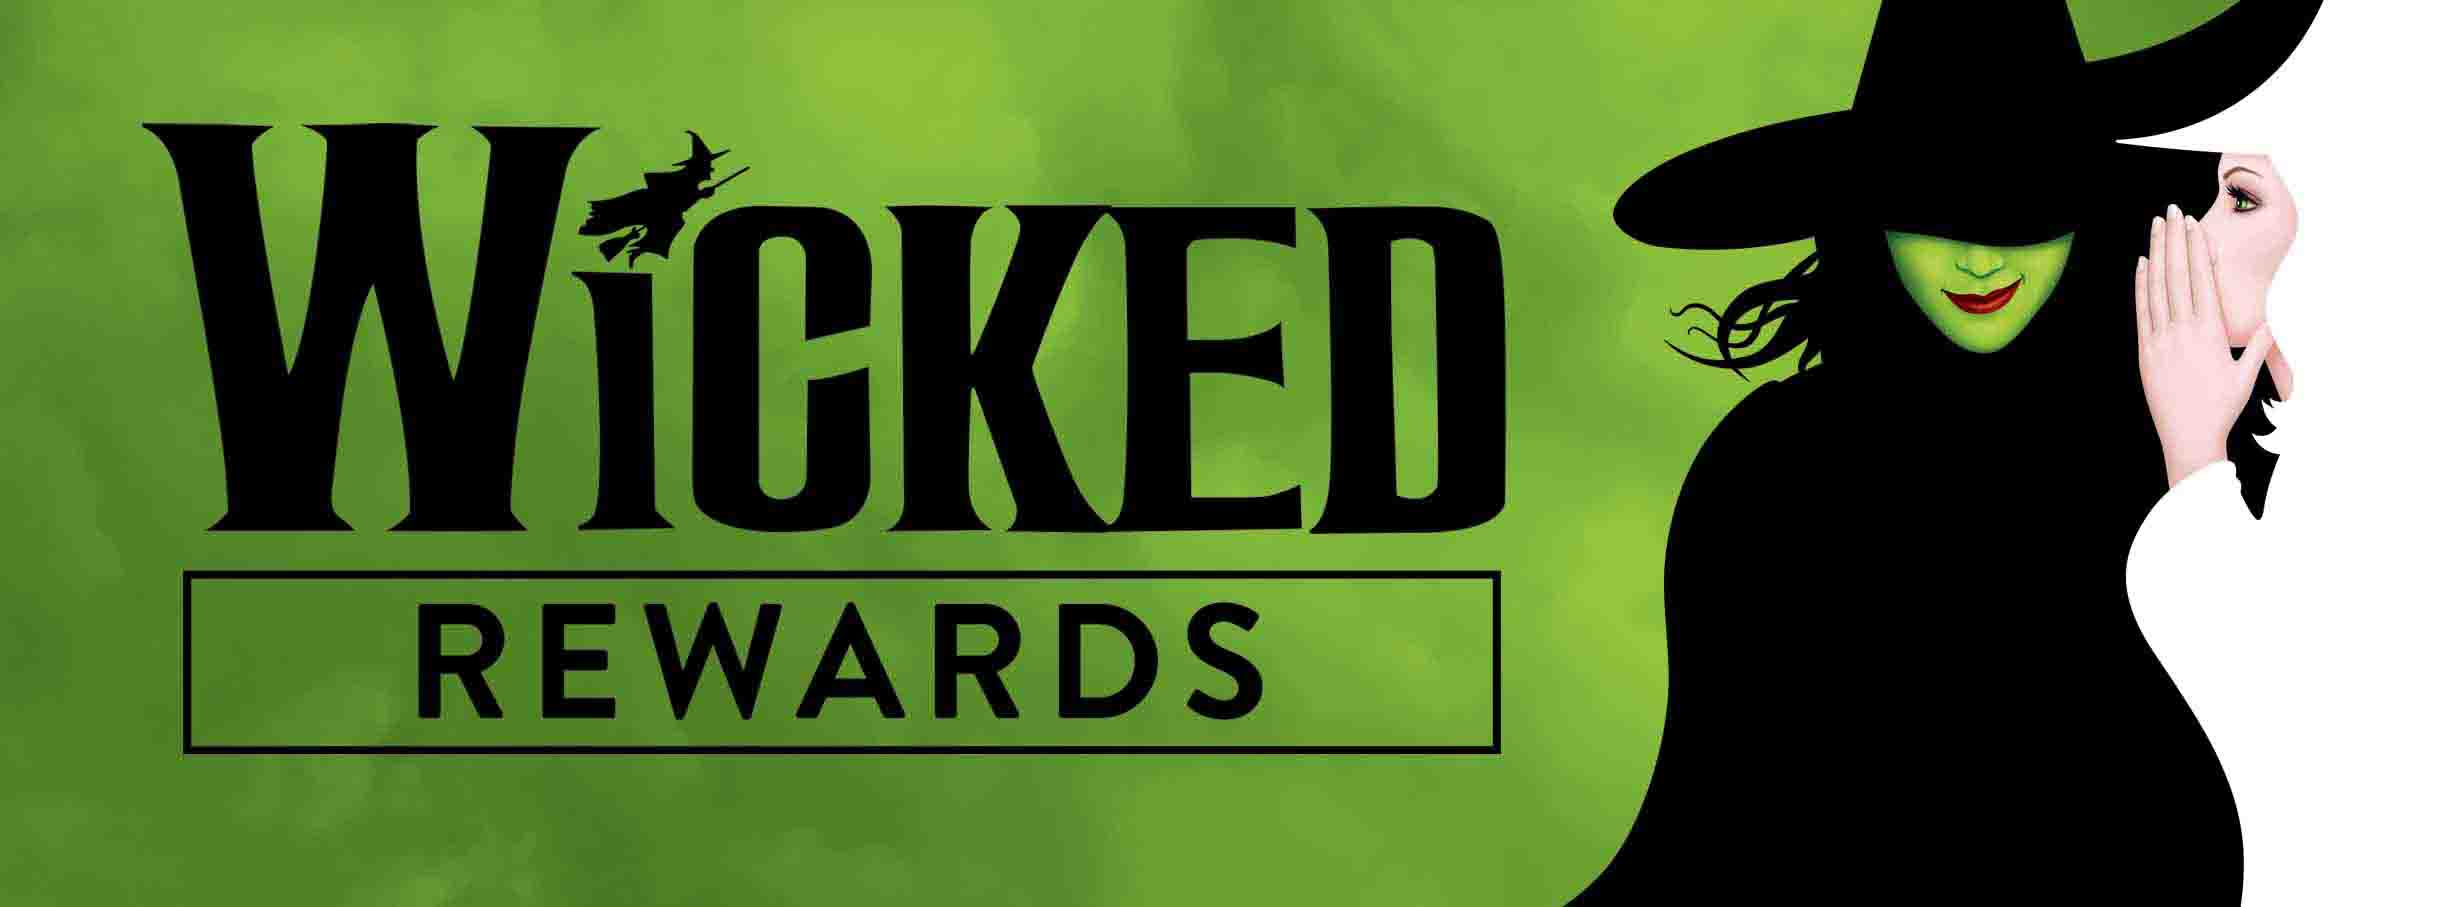 Audience Rewards Partners with Wicked to launch the first show loyalty program